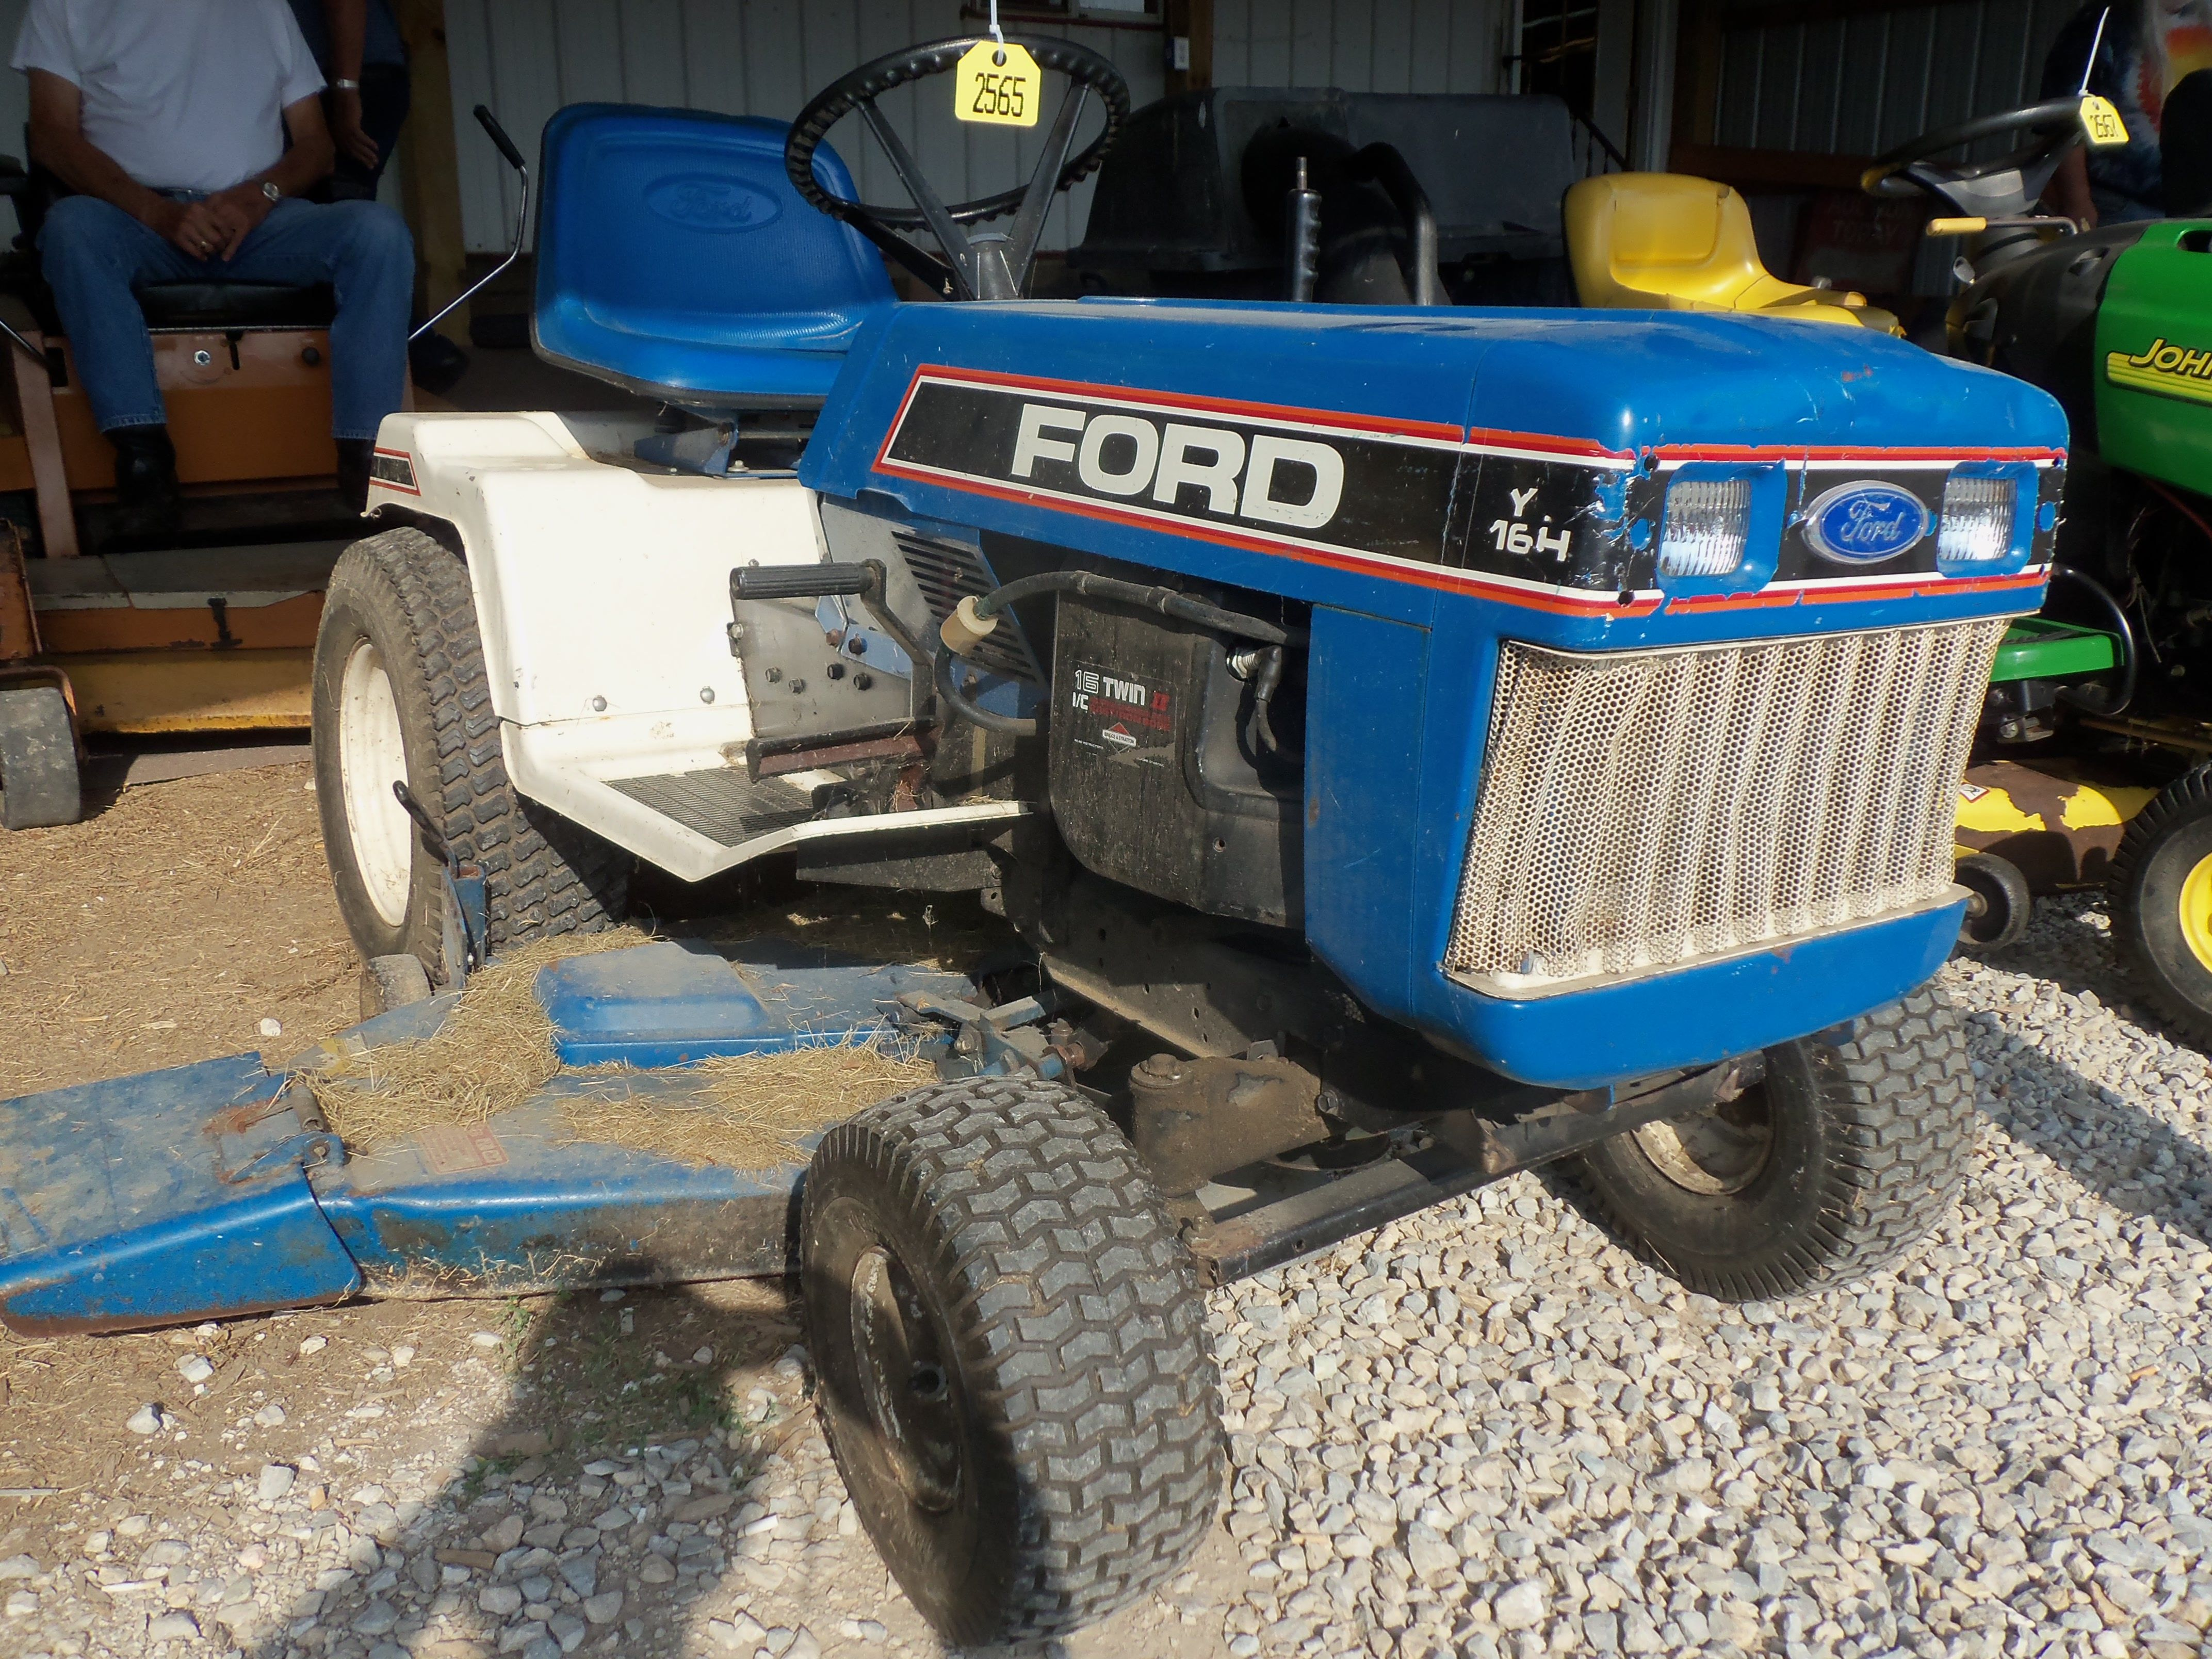 Ford Yt16h Garden Lawn Tractor Sold For 150 00 16hp 608 Lbs